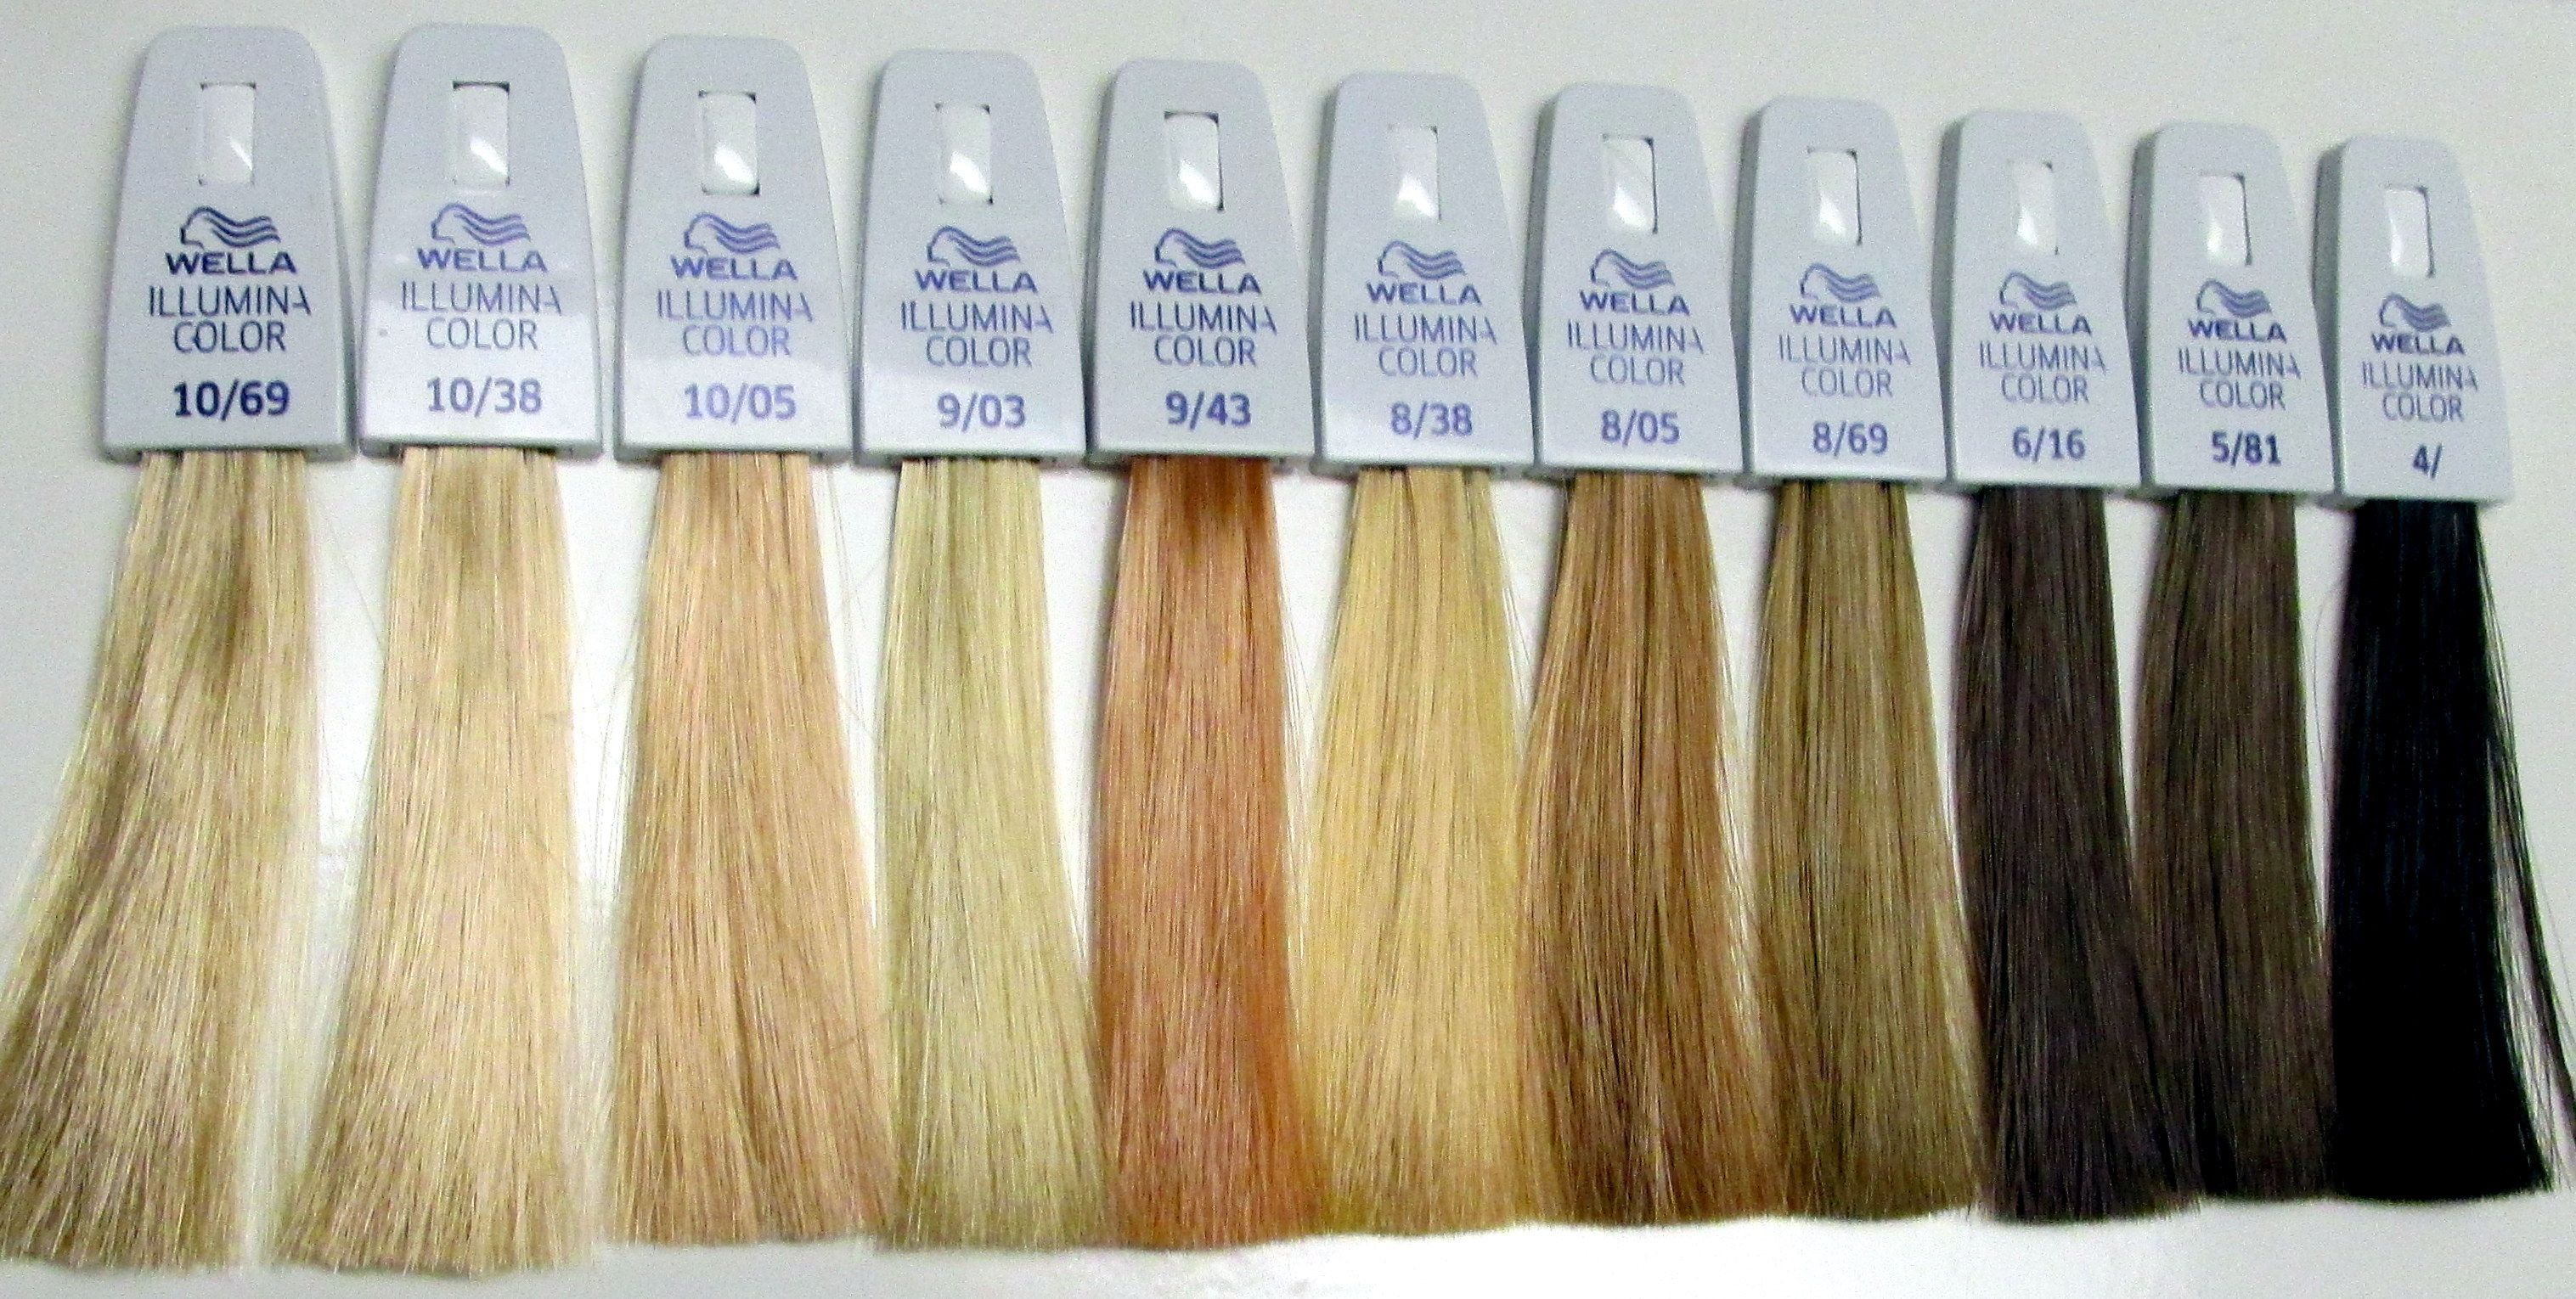 Wella   illumina hair color works in  different method than all other tremendous shine gray coverage also rh pinterest